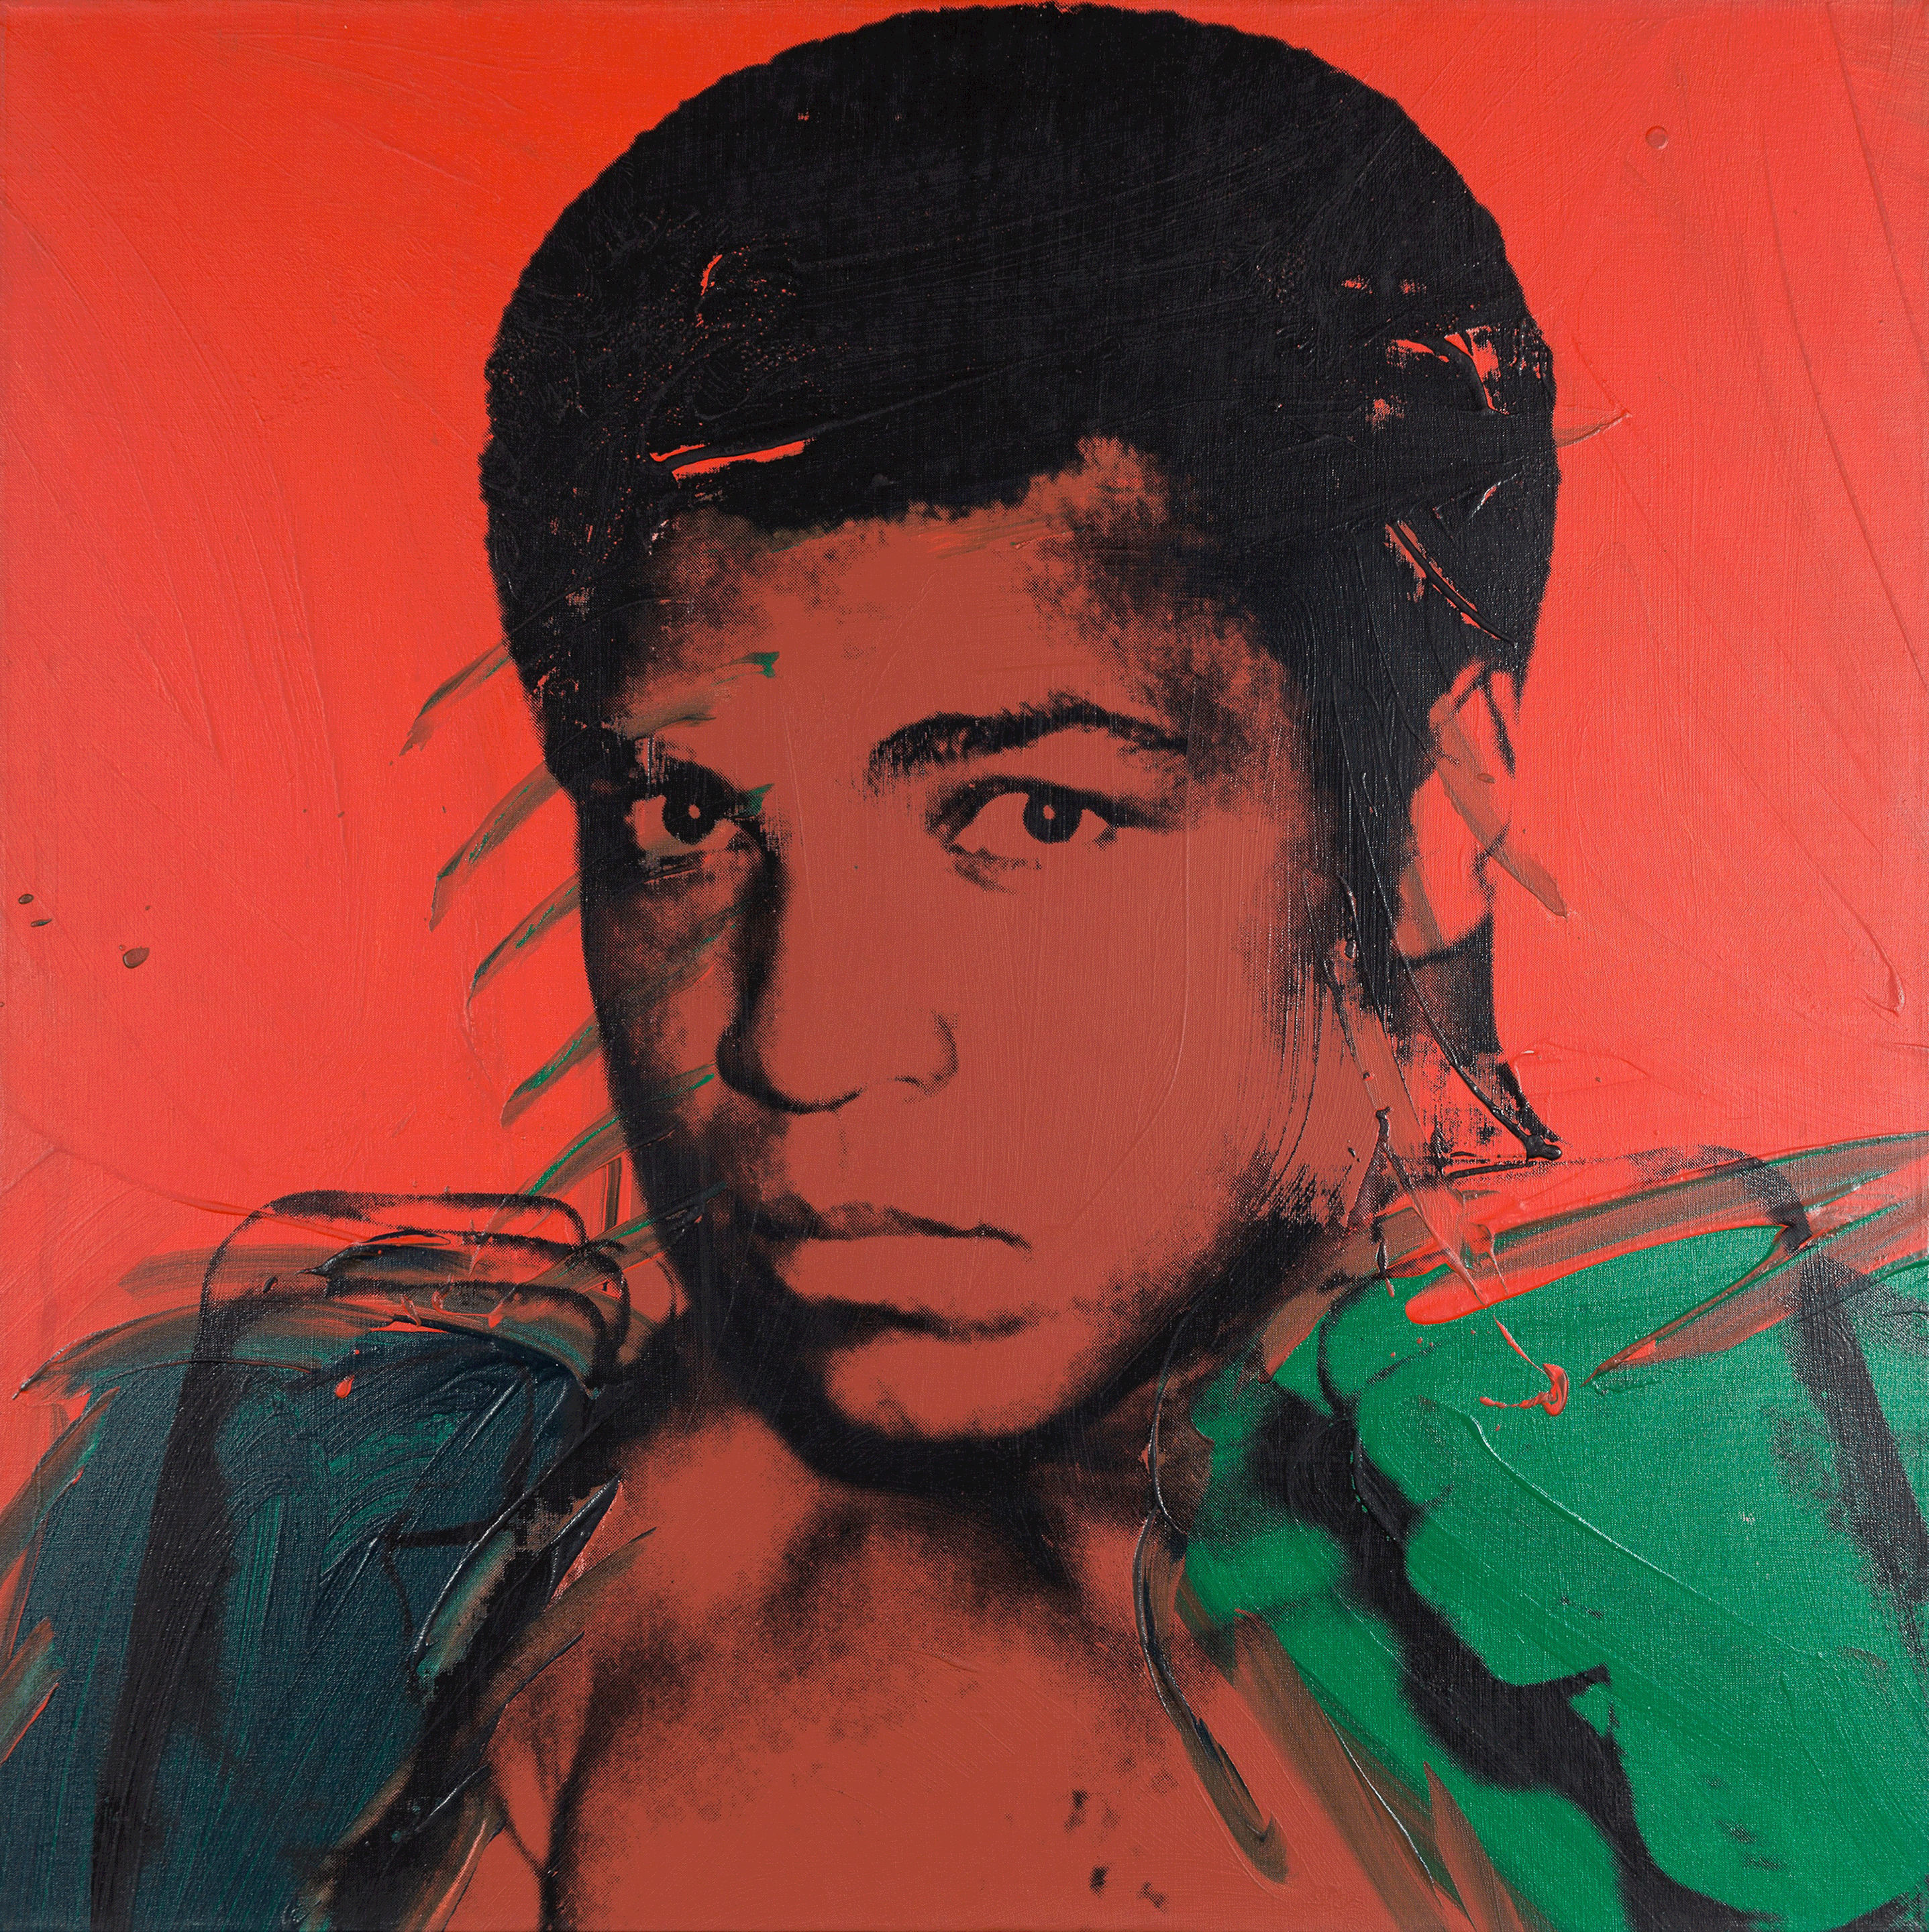 Muhammad Ali von Andy Warhol, 1978, Private collection, Copyright: 2017 The Andy Warhol Foundation for the Visual Arts, Inc. / Artists Rights Society (ARS), New York and DACS, London